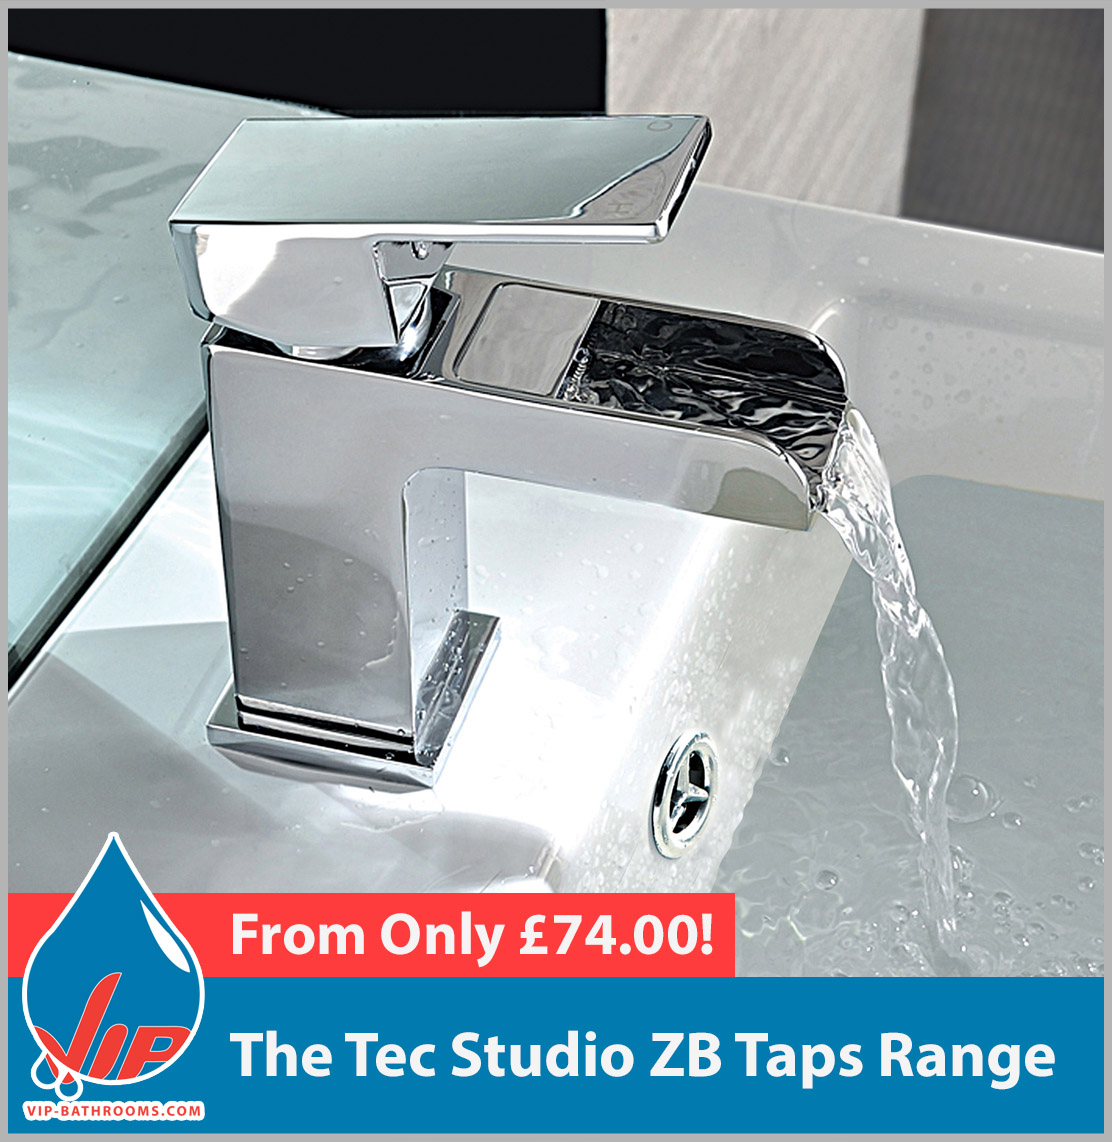 Click here to view the Tec Studio ZB range of high quality designer Bathroom Taps